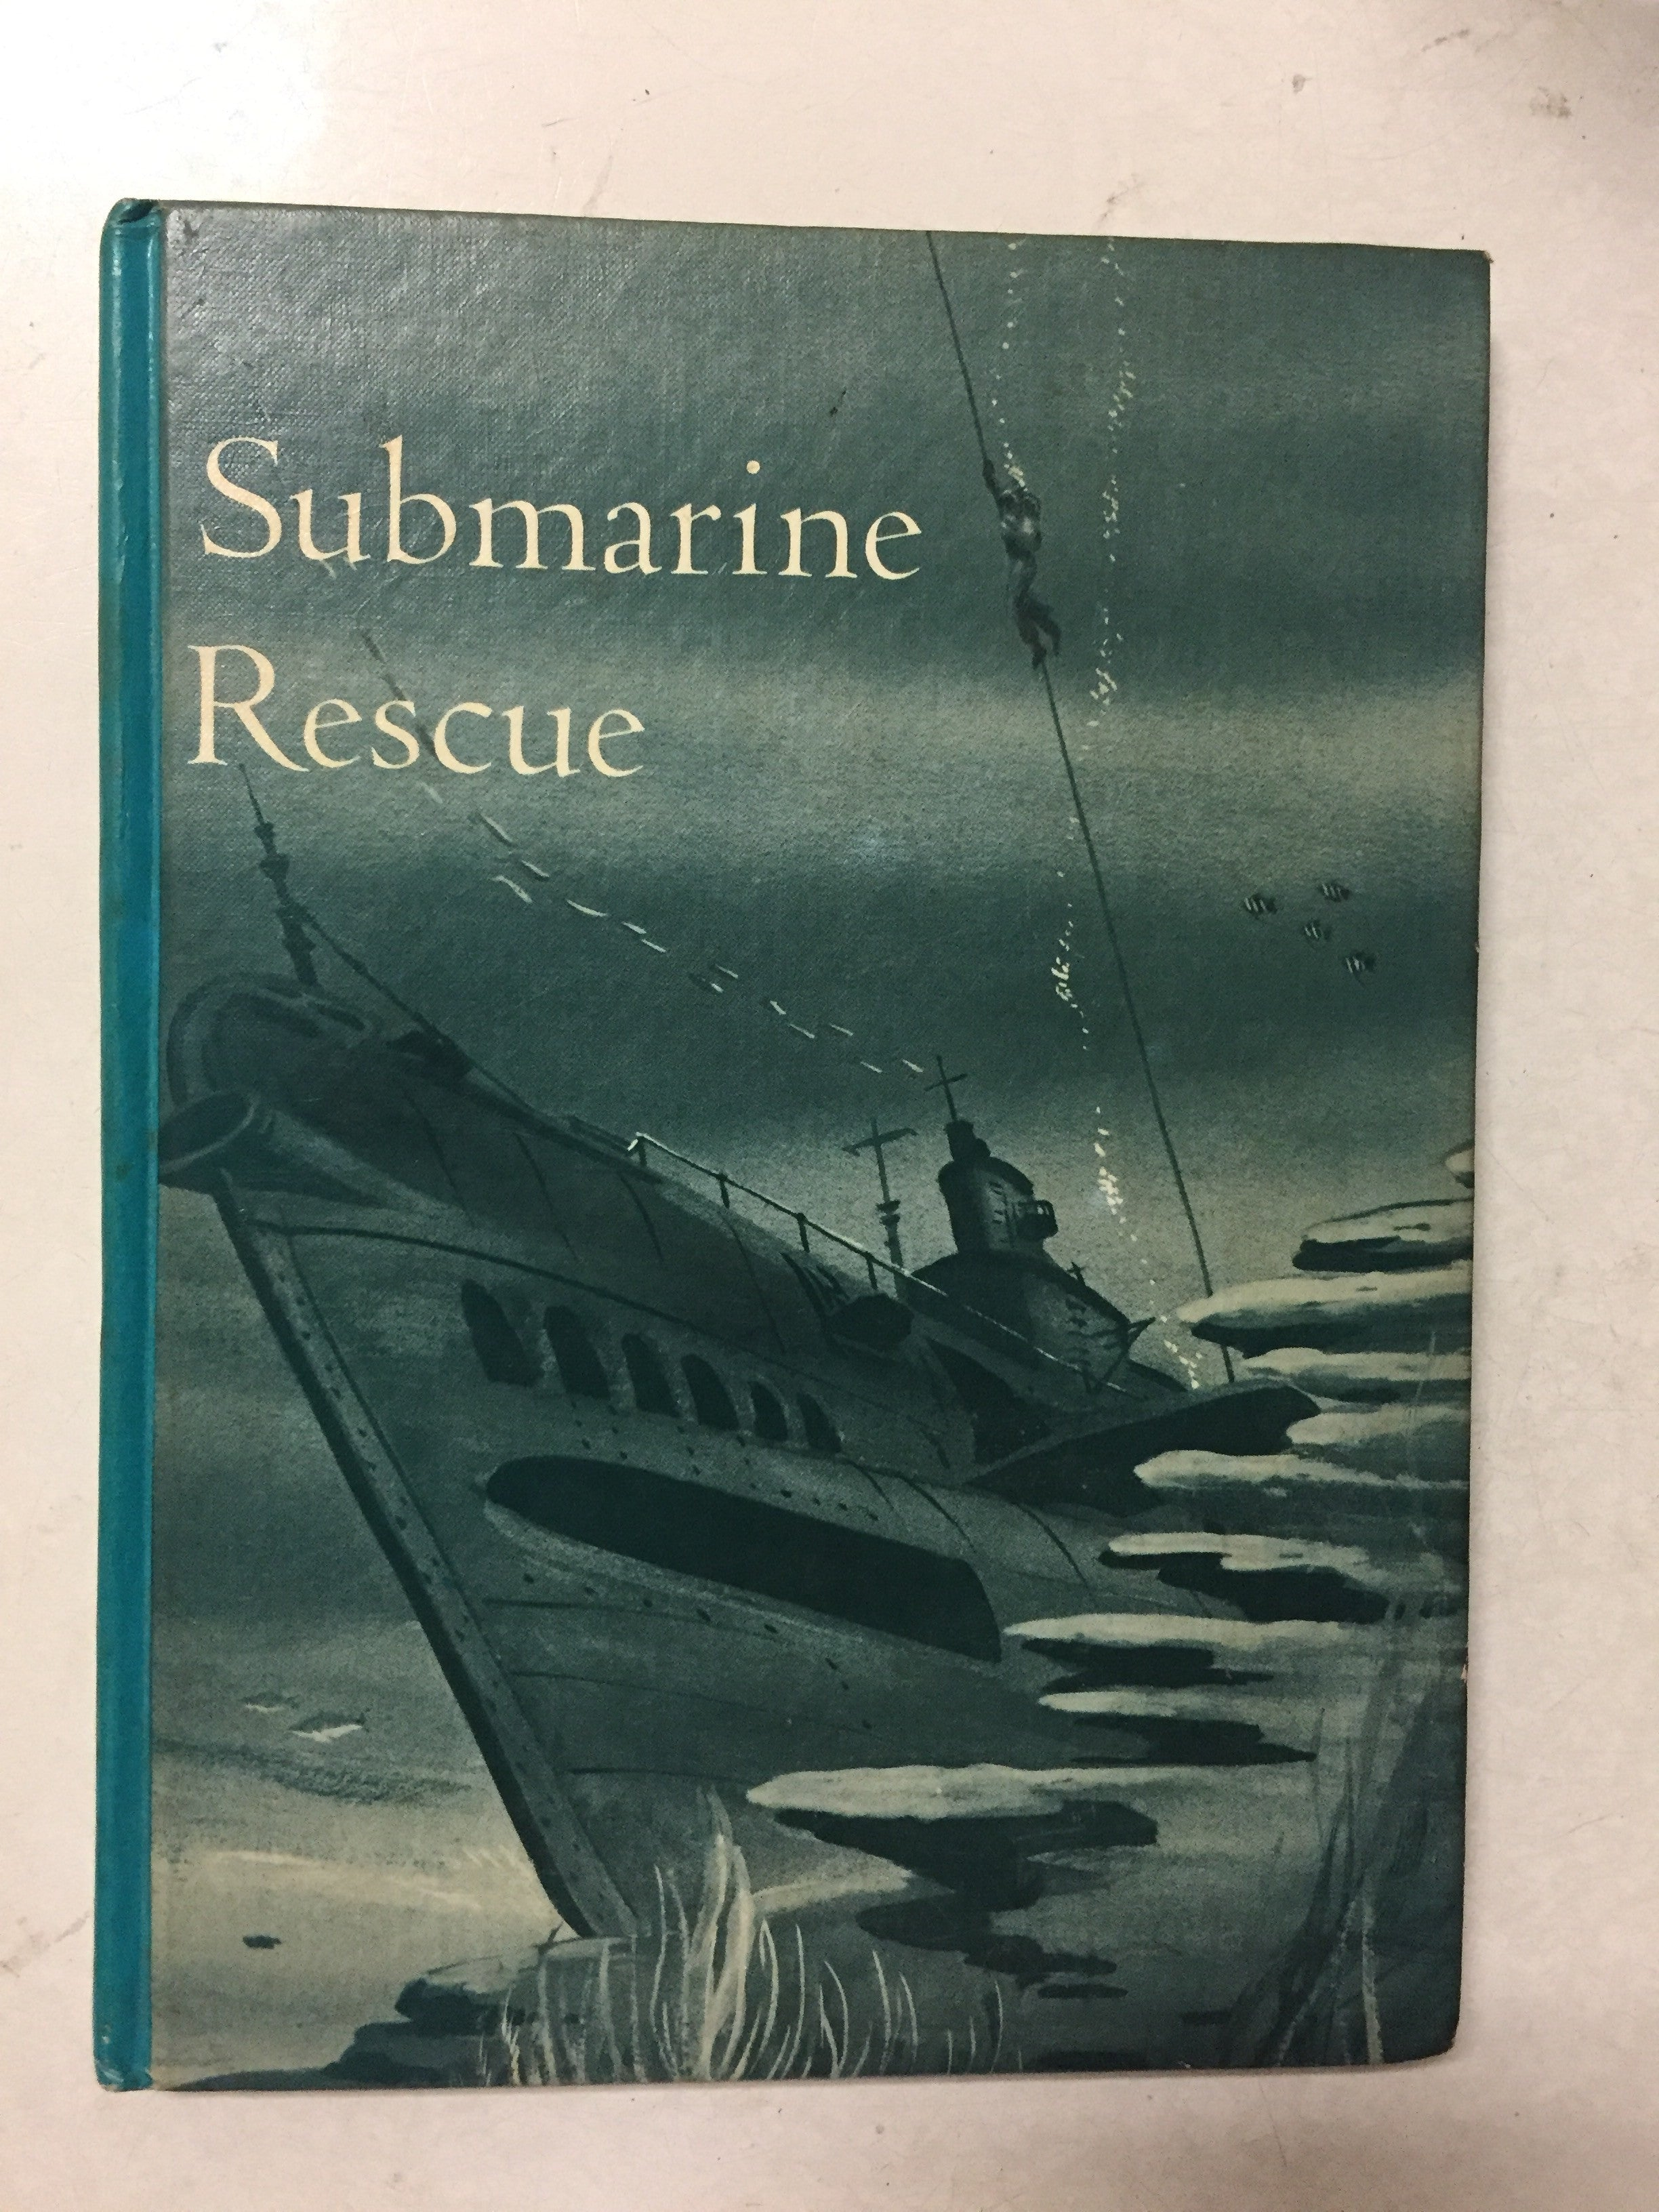 Submarine Rescue - Slickcatbooks